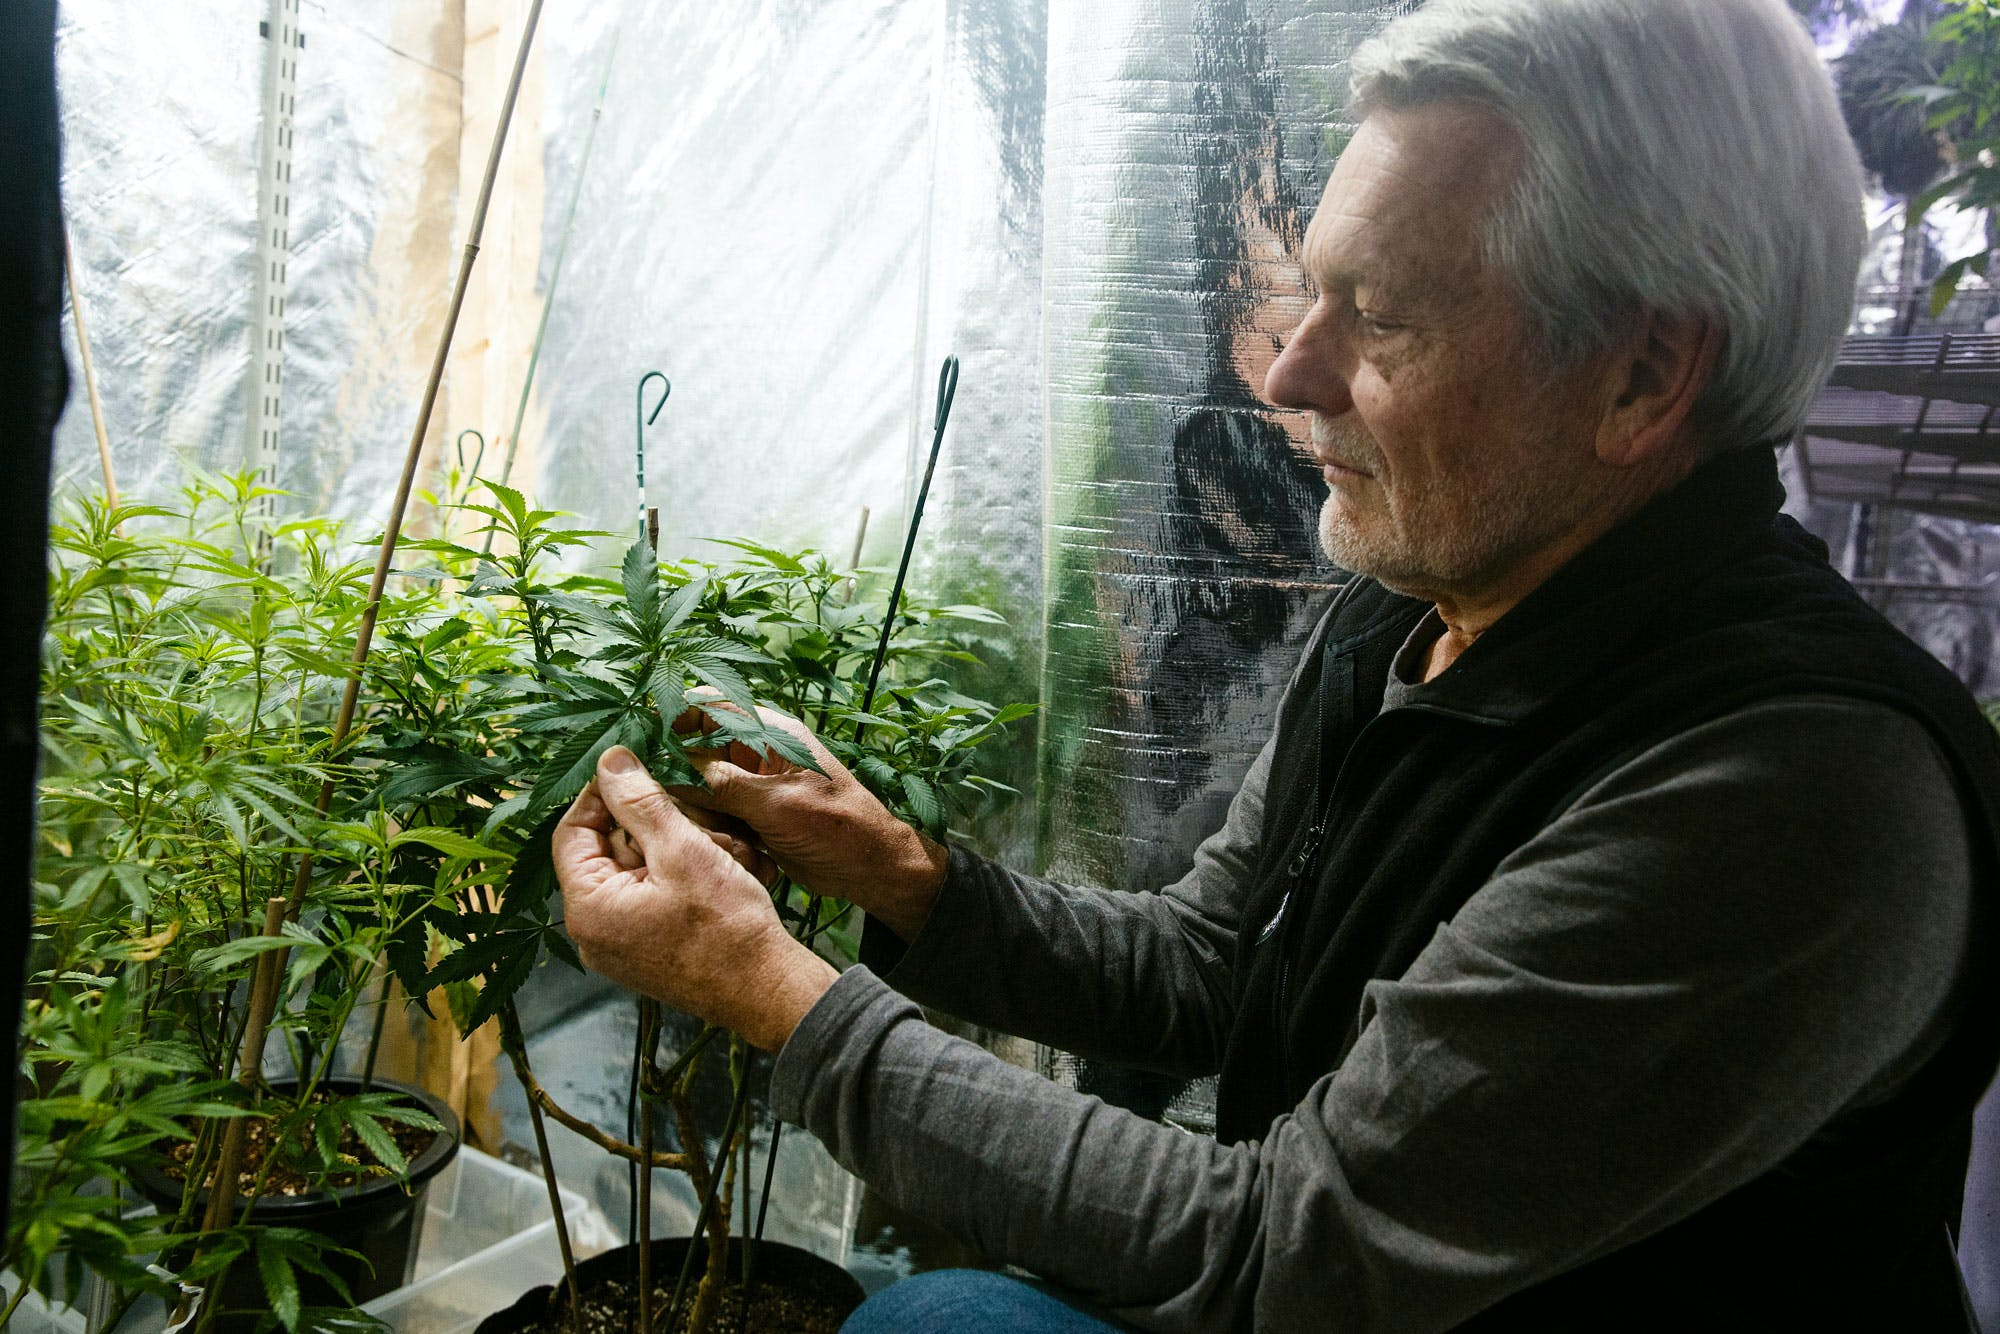 Marijuana is legal in Massachusetts but the feds are still looking to prosecute cases here in these three areas1 Cannabis is Legal in Vermont, But Gifting it Isnt